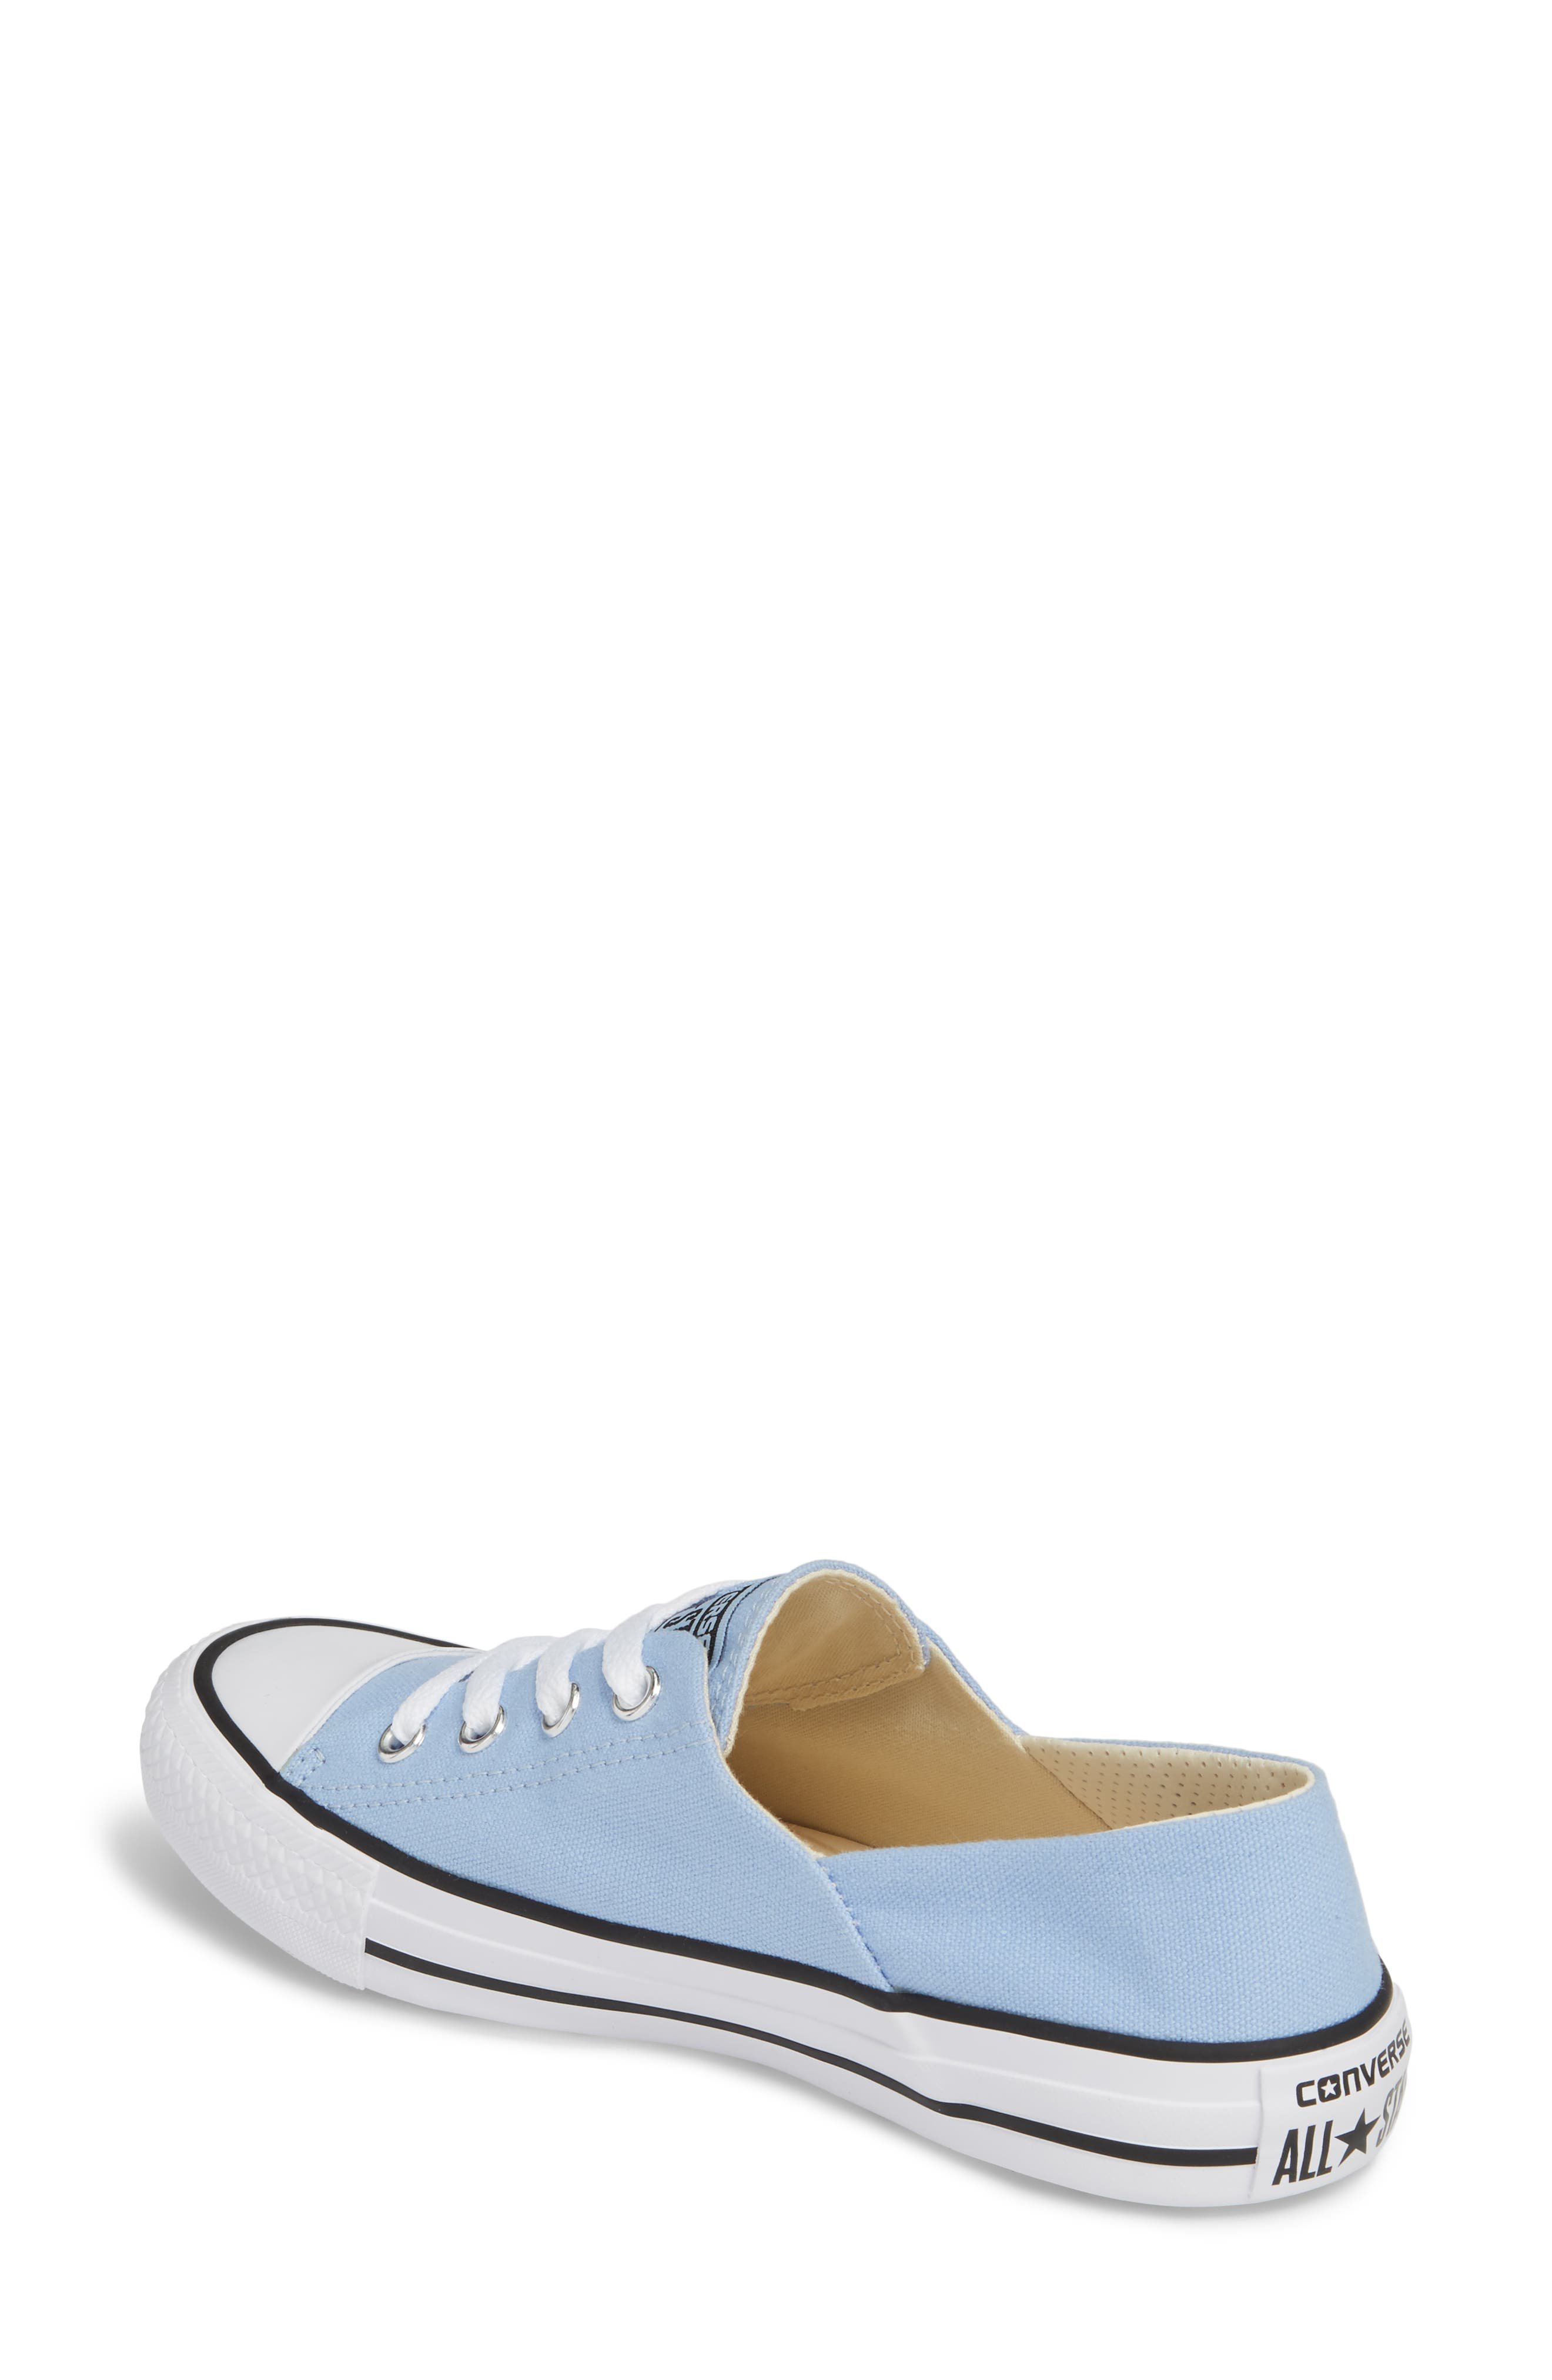 Chuck Taylor<sup>®</sup> All Star<sup>®</sup> Coral Ox Low Top Sneaker,                             Alternate thumbnail 2, color,                             457